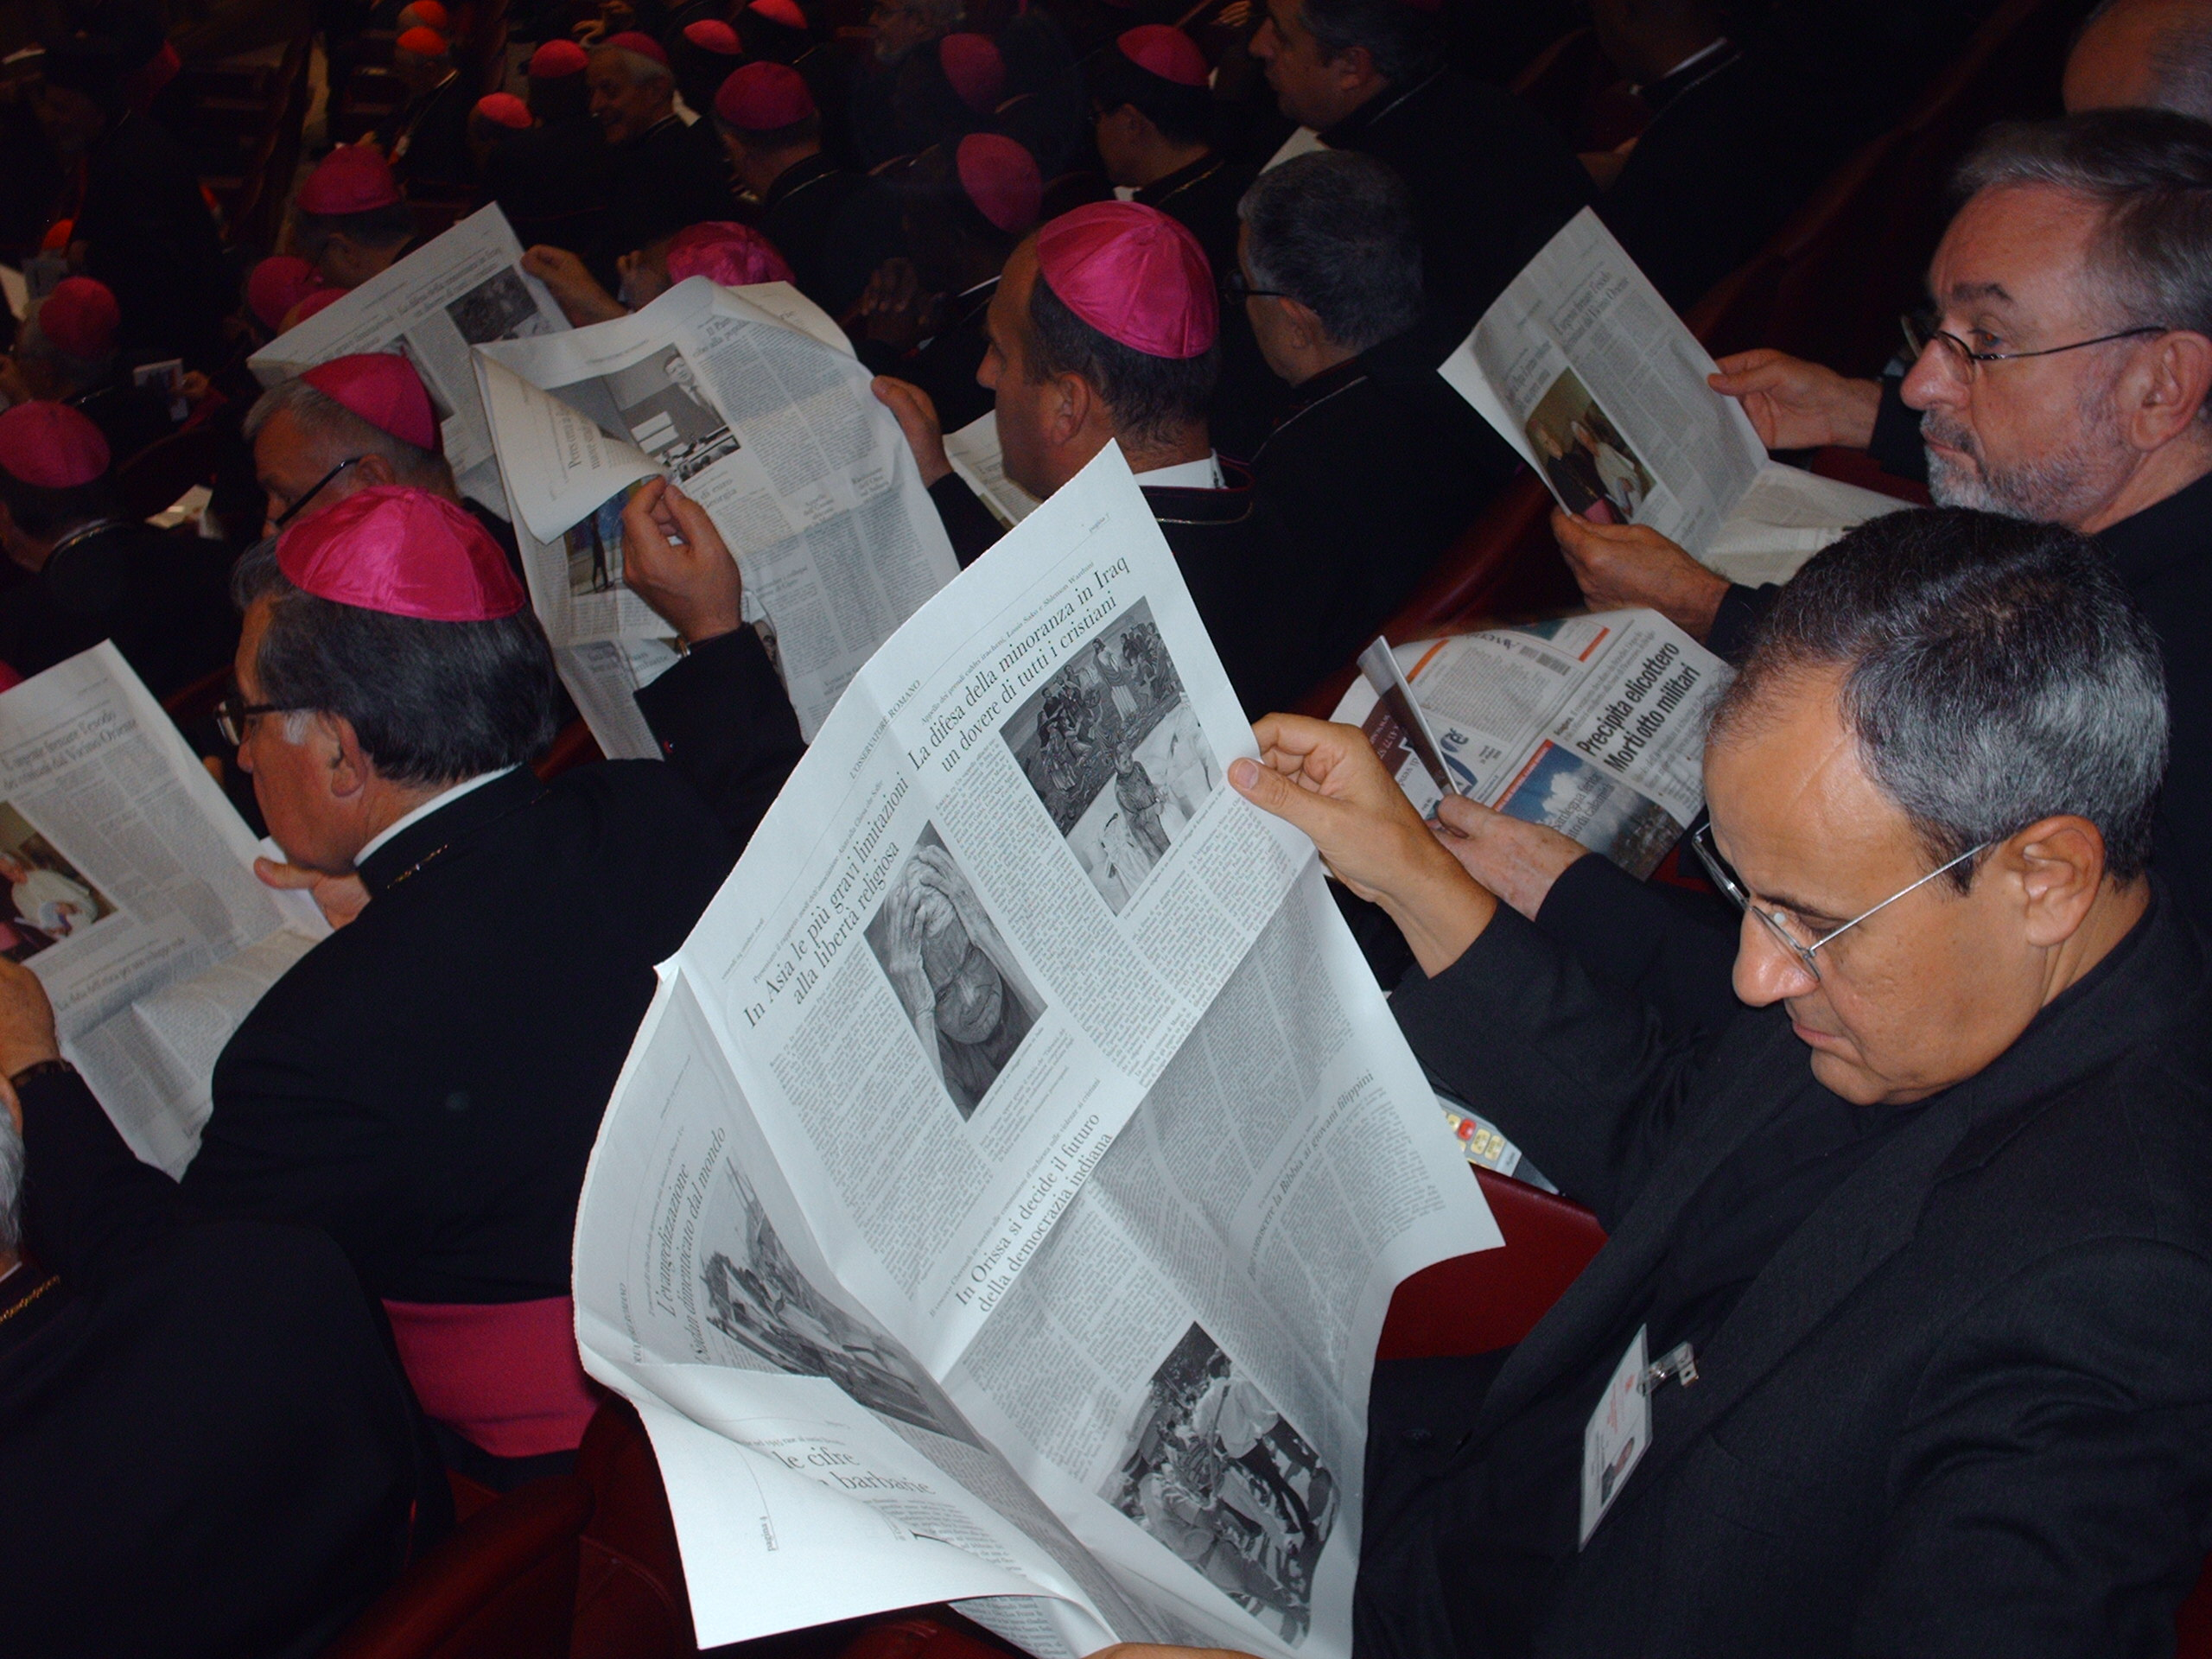 Poll: L'Osservatore Romano is the most popular morning newspaper among synod participants